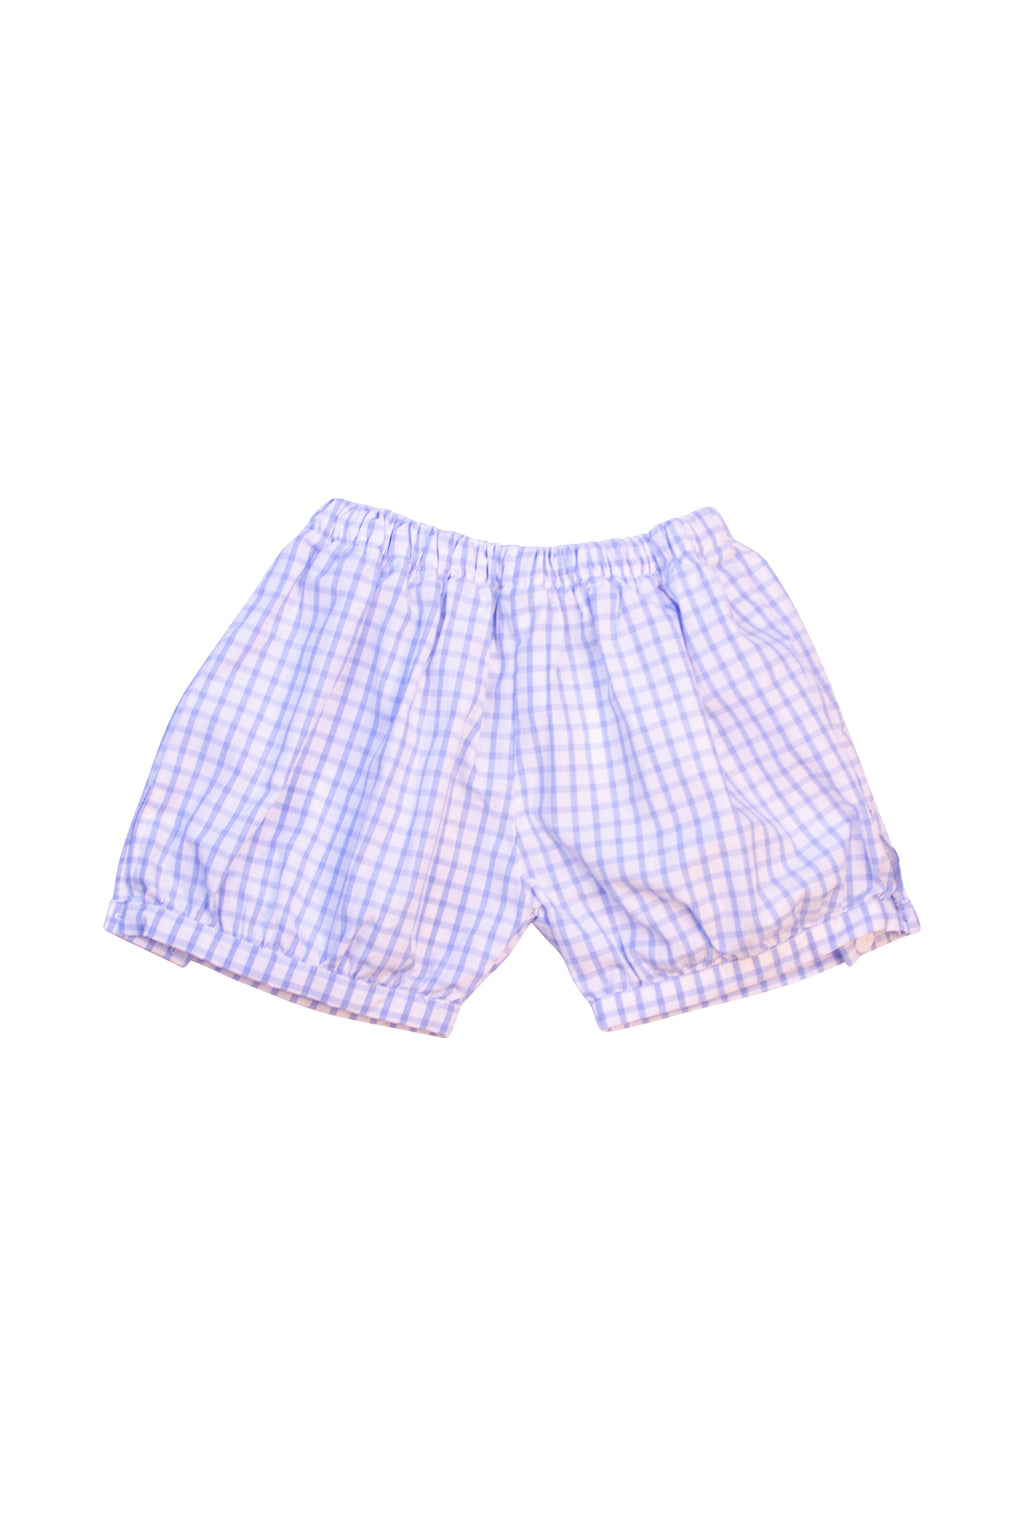 Boys Blue Windowpane Banded Shorts